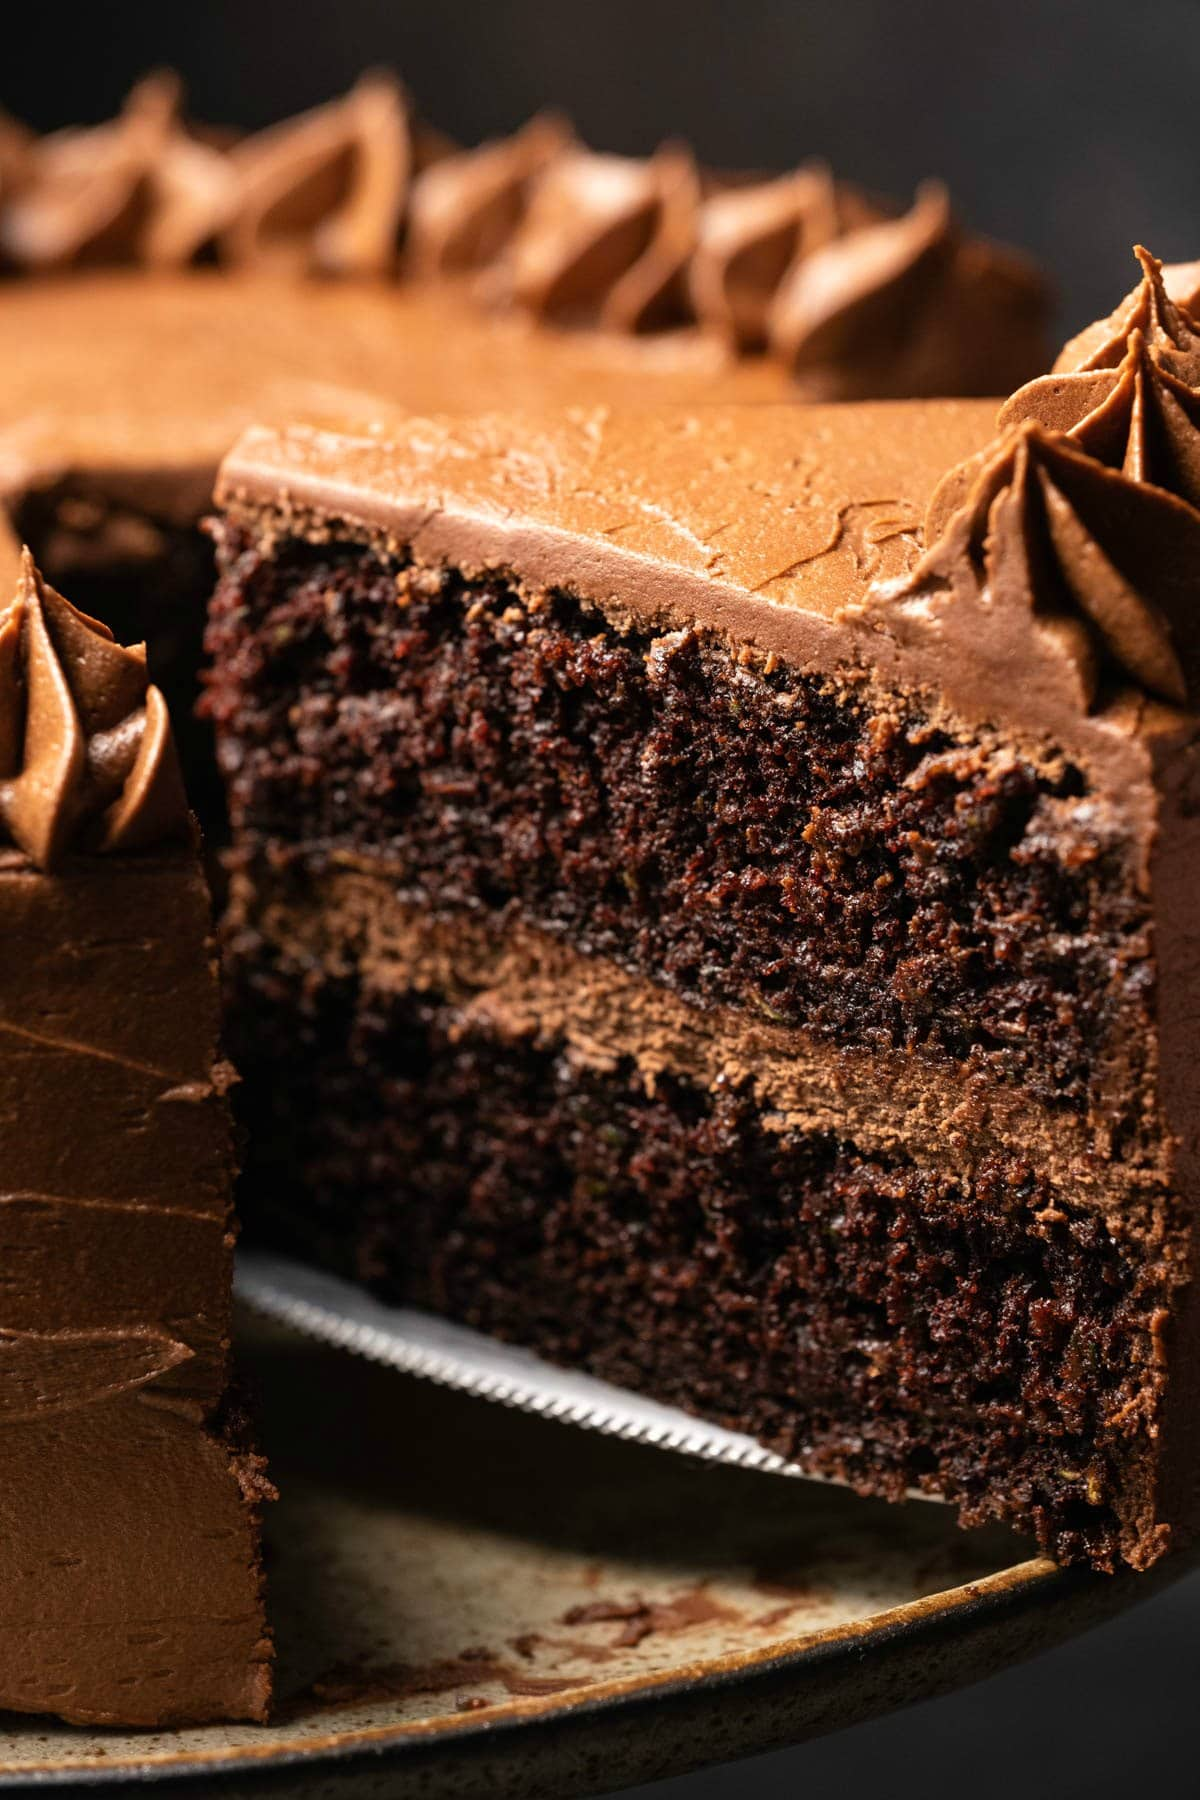 Chocolate zucchini cake on a cake stand with one slice cut and ready to serve.